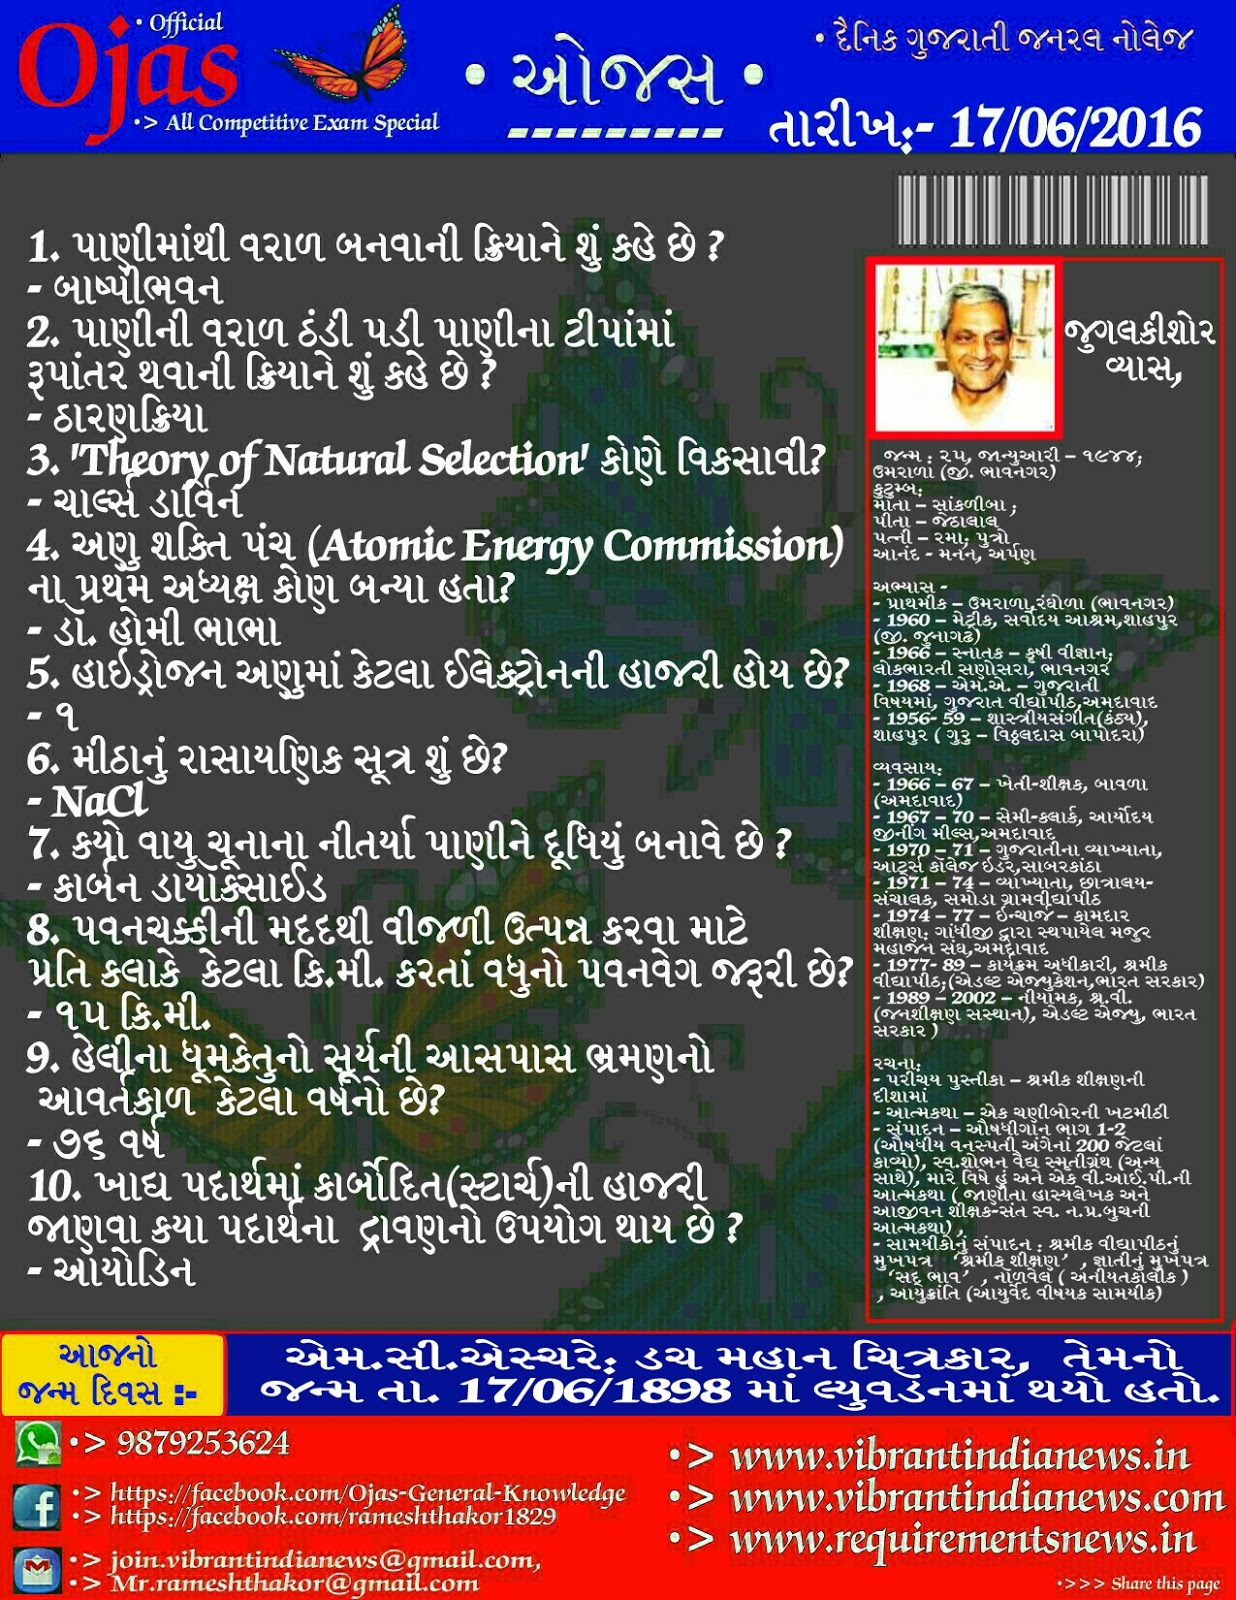 ojas daily gk page date 17 06 2016 kishor parmar useful general knowledge for all competitive exams preparation in gujarat general knowledge is a key of success in all competitive exams